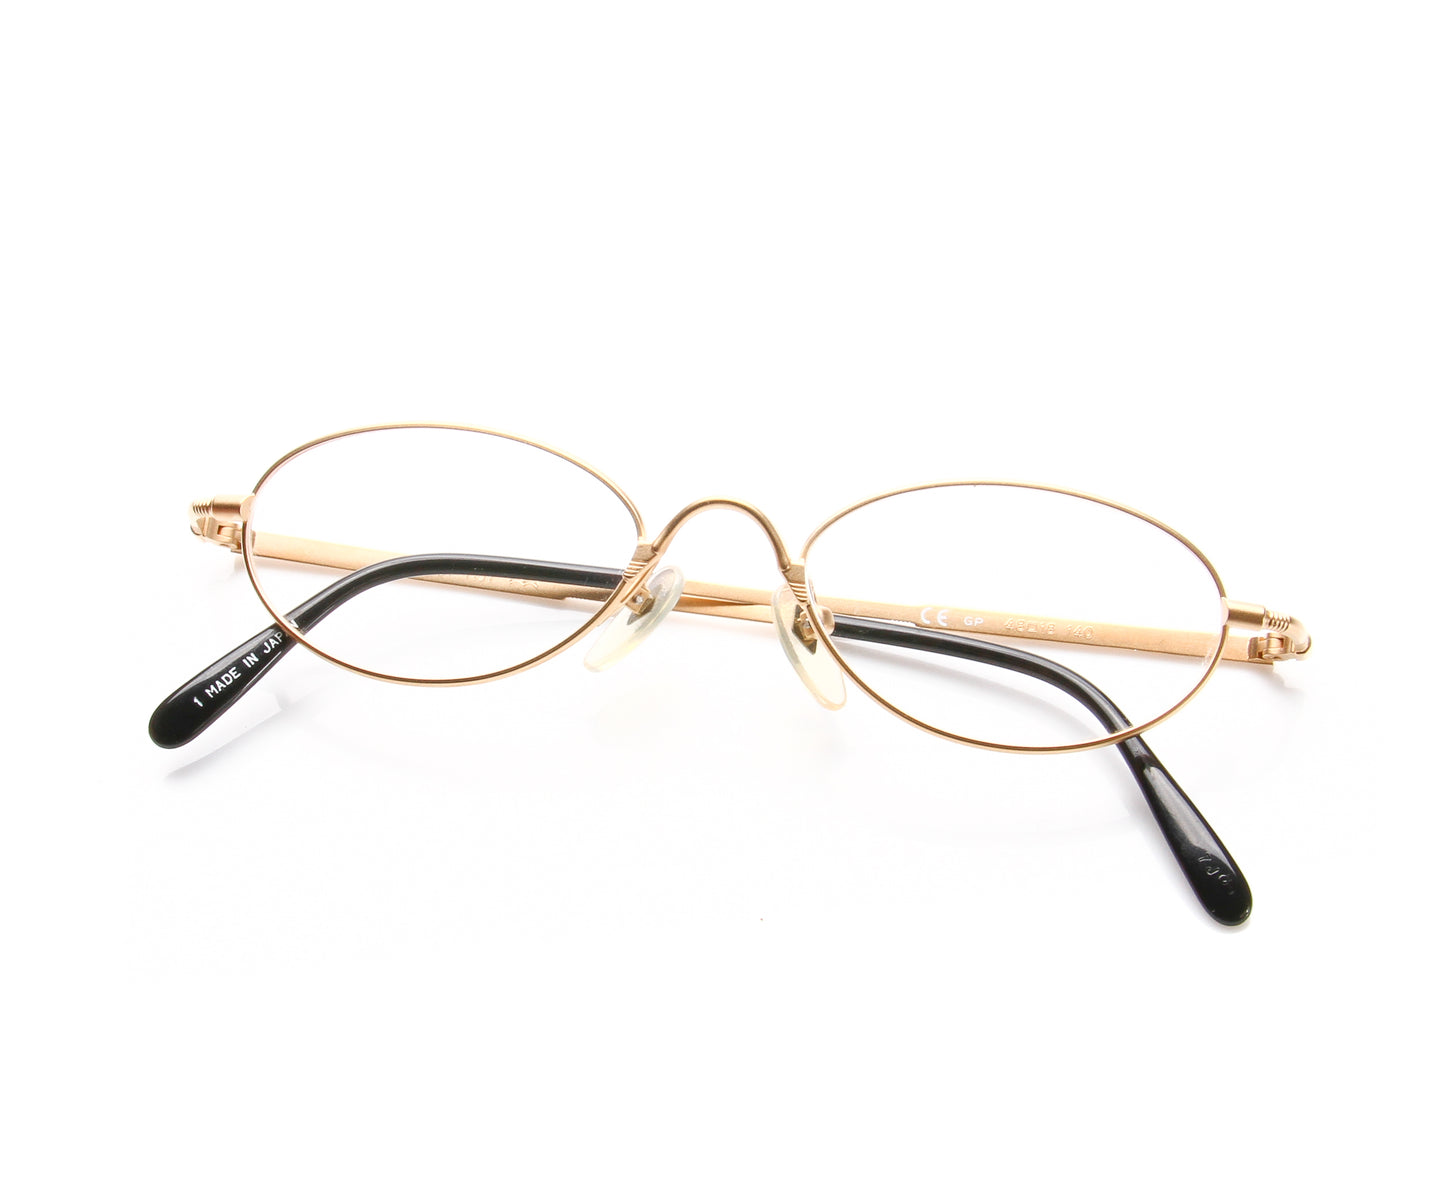 Jean Paul Gaultier 57 7107 1 Gold Plated, Jean Paul Gaultier , glasses frames, eyeglasses online, eyeglass frames, mens glasses, womens glasses, buy glasses online, designer eyeglasses, vintage sunglasses, retro sunglasses, vintage glasses, sunglass, eyeglass, glasses, lens, vintage frames company, vf